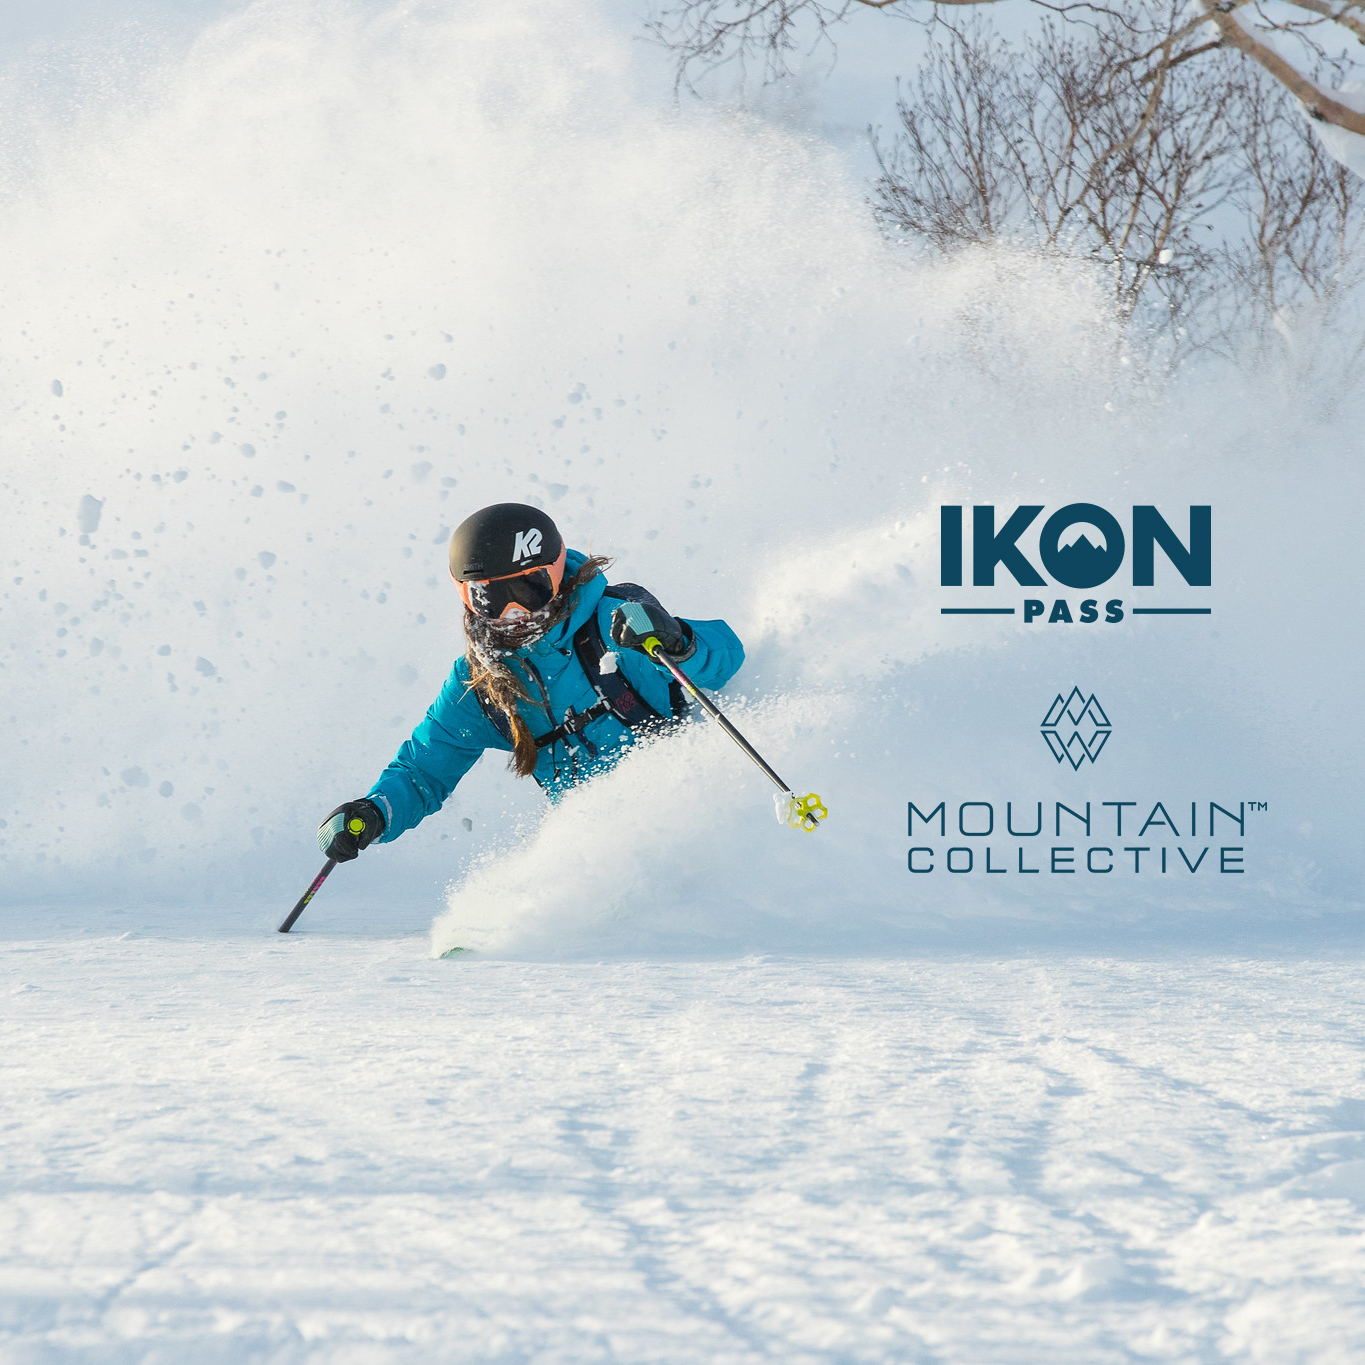 Mountain Collective and Ikon Pass Special Offer